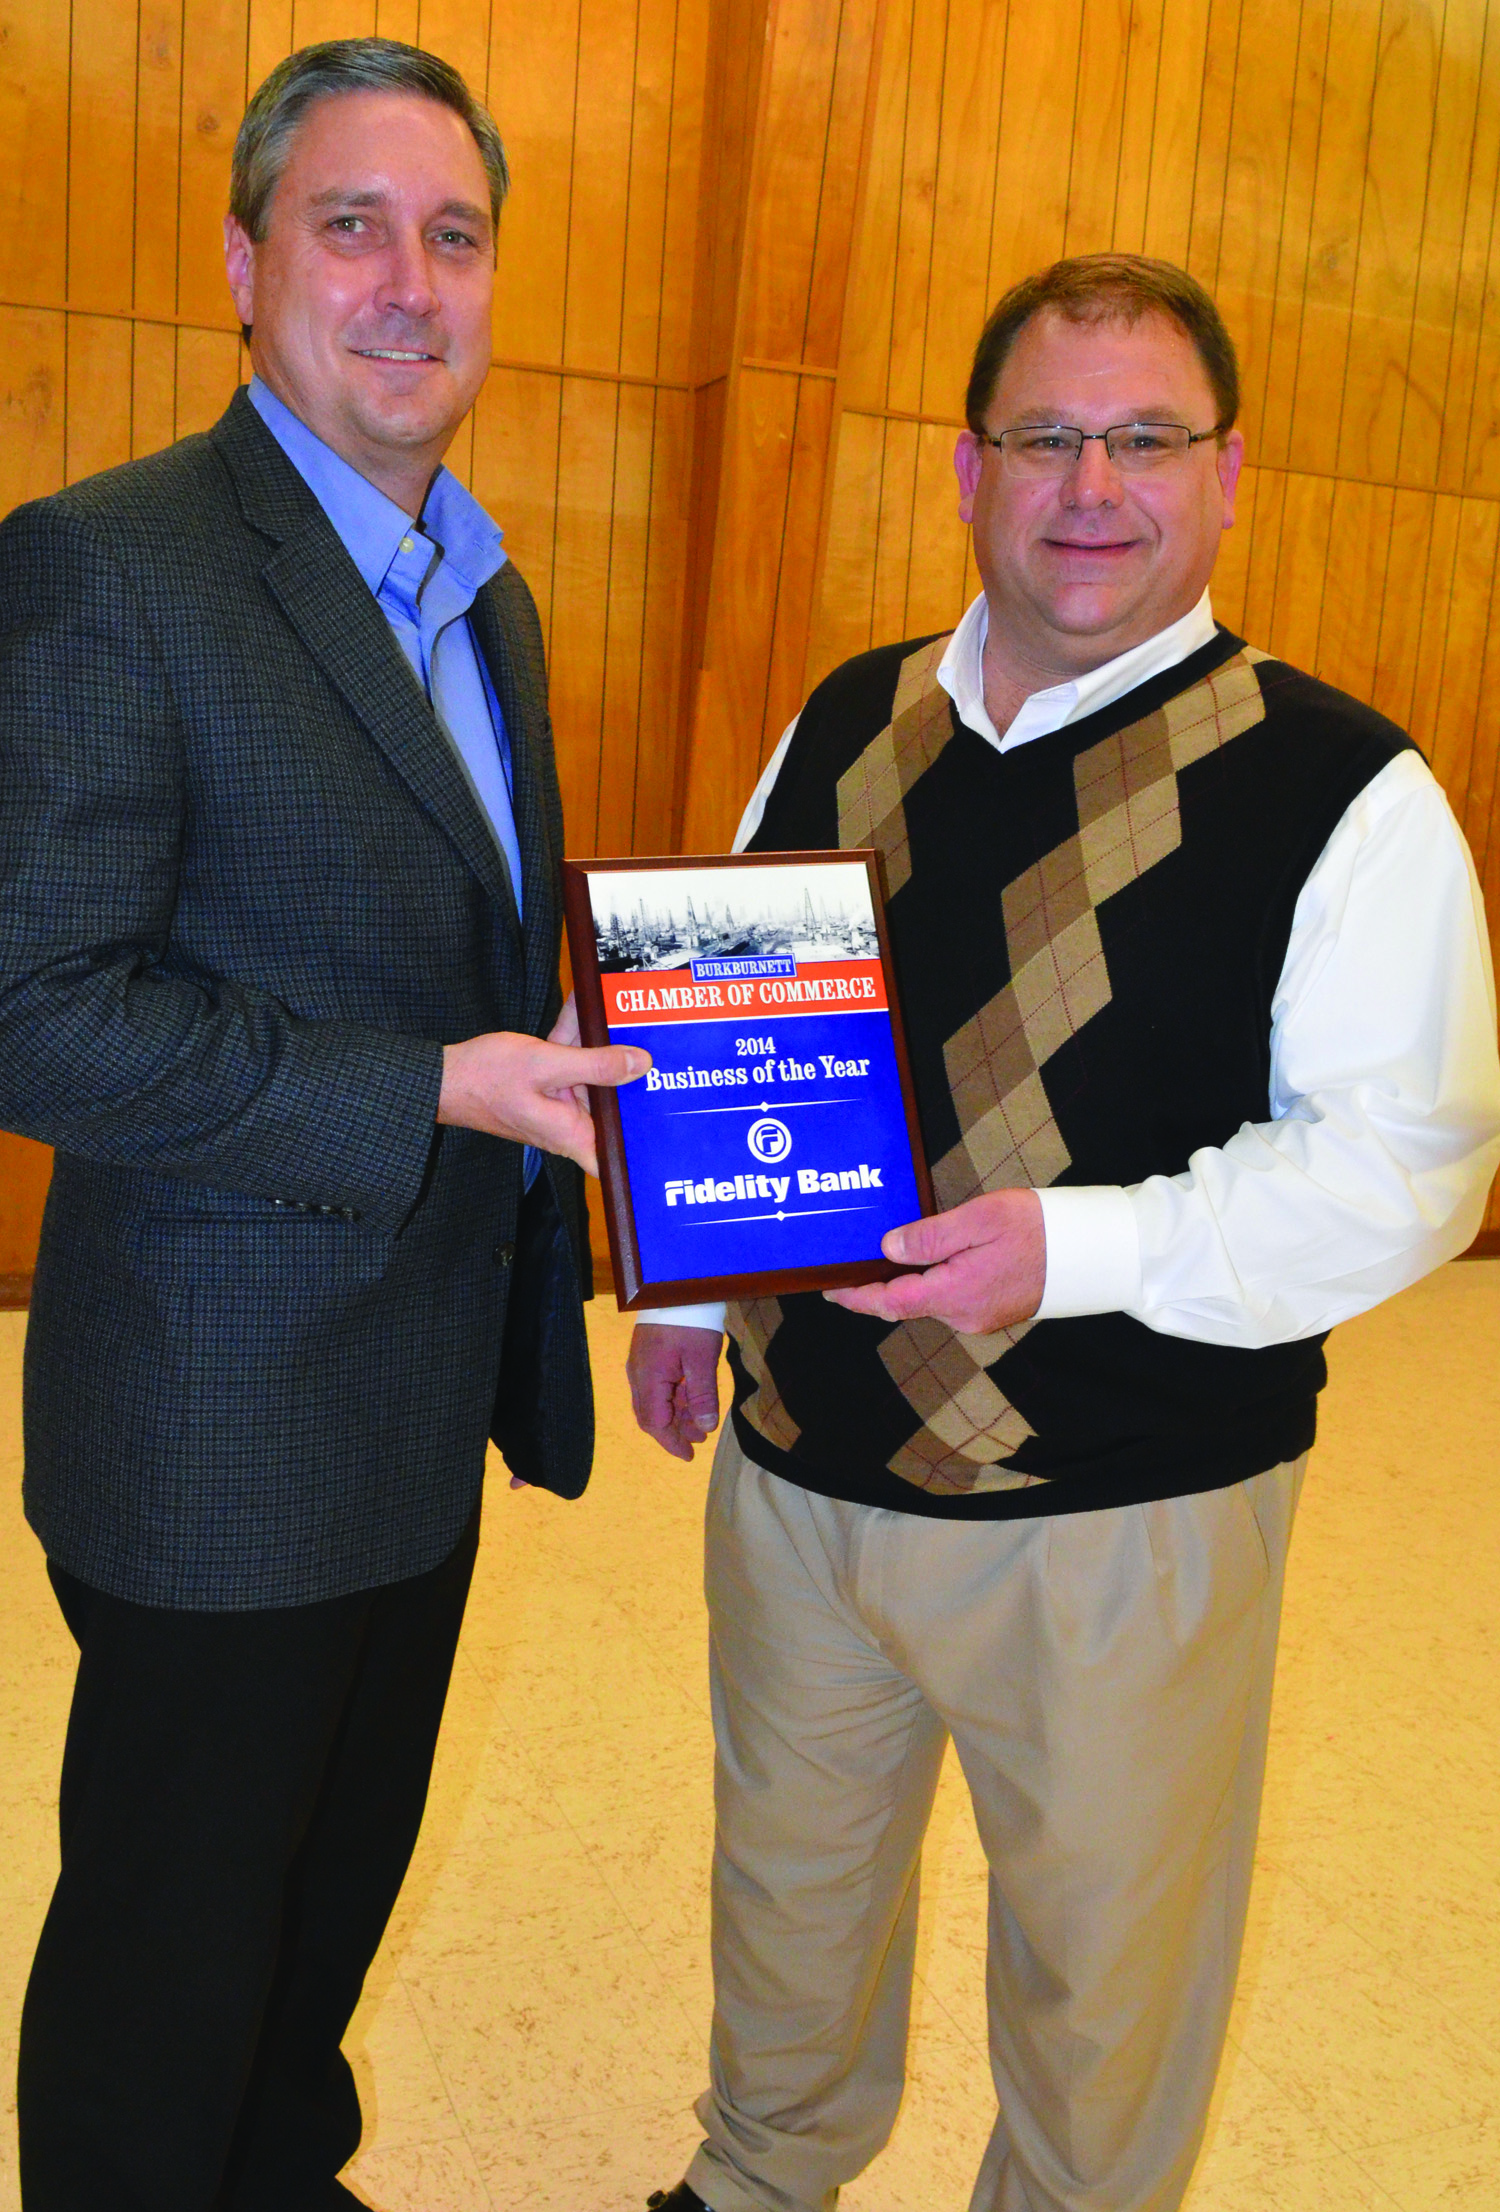 2014 Business of the Year - Fidelity Bank